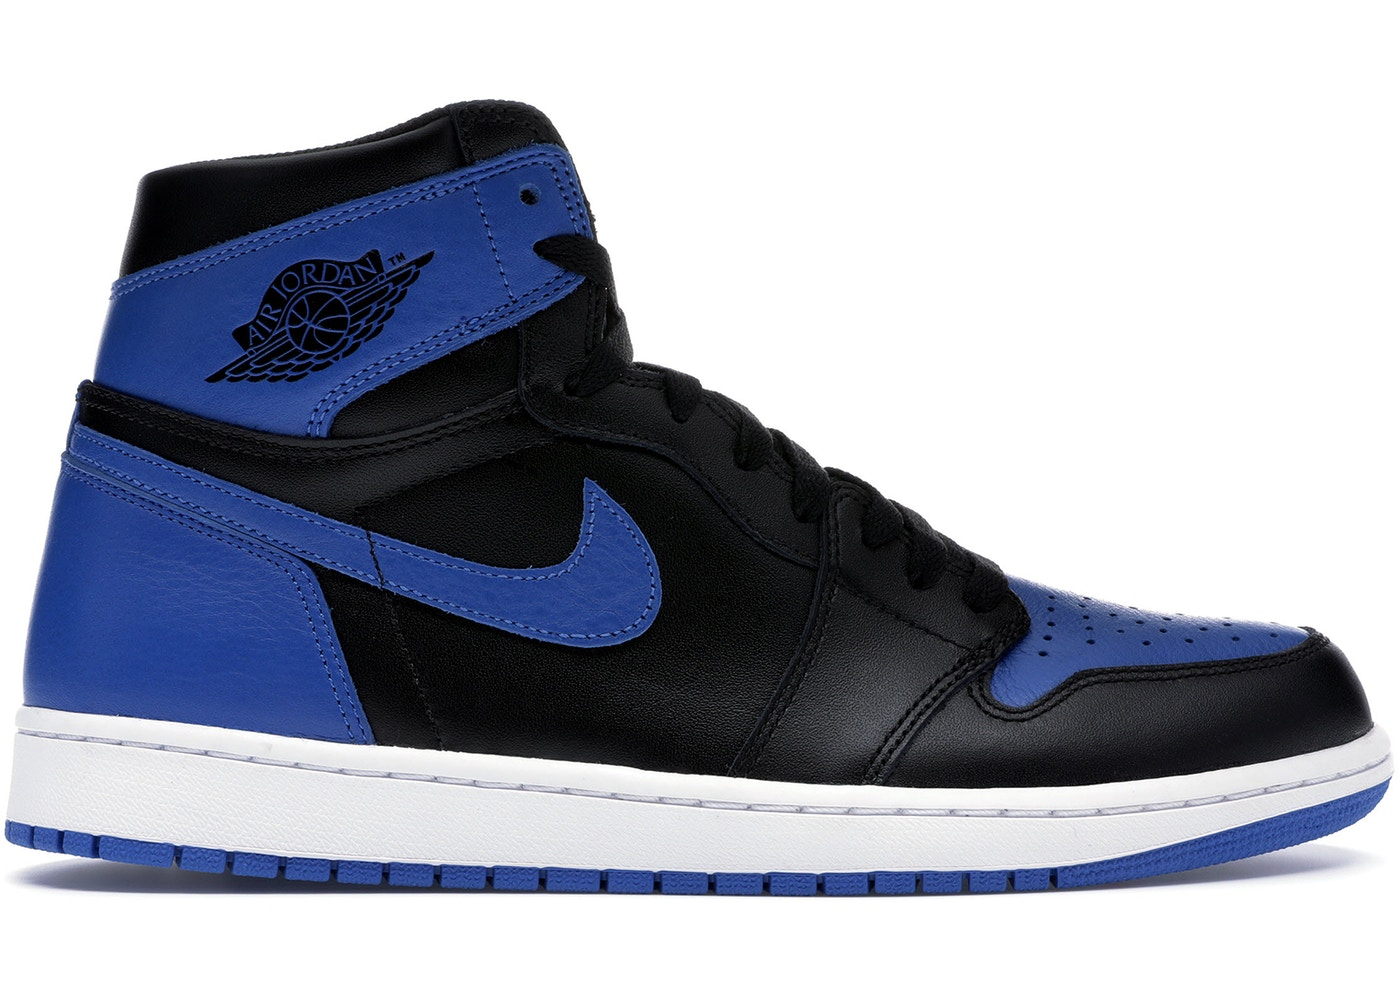 promo code a5827 92db4 Jordan 1 Retro Royal (2017) - 555088-007